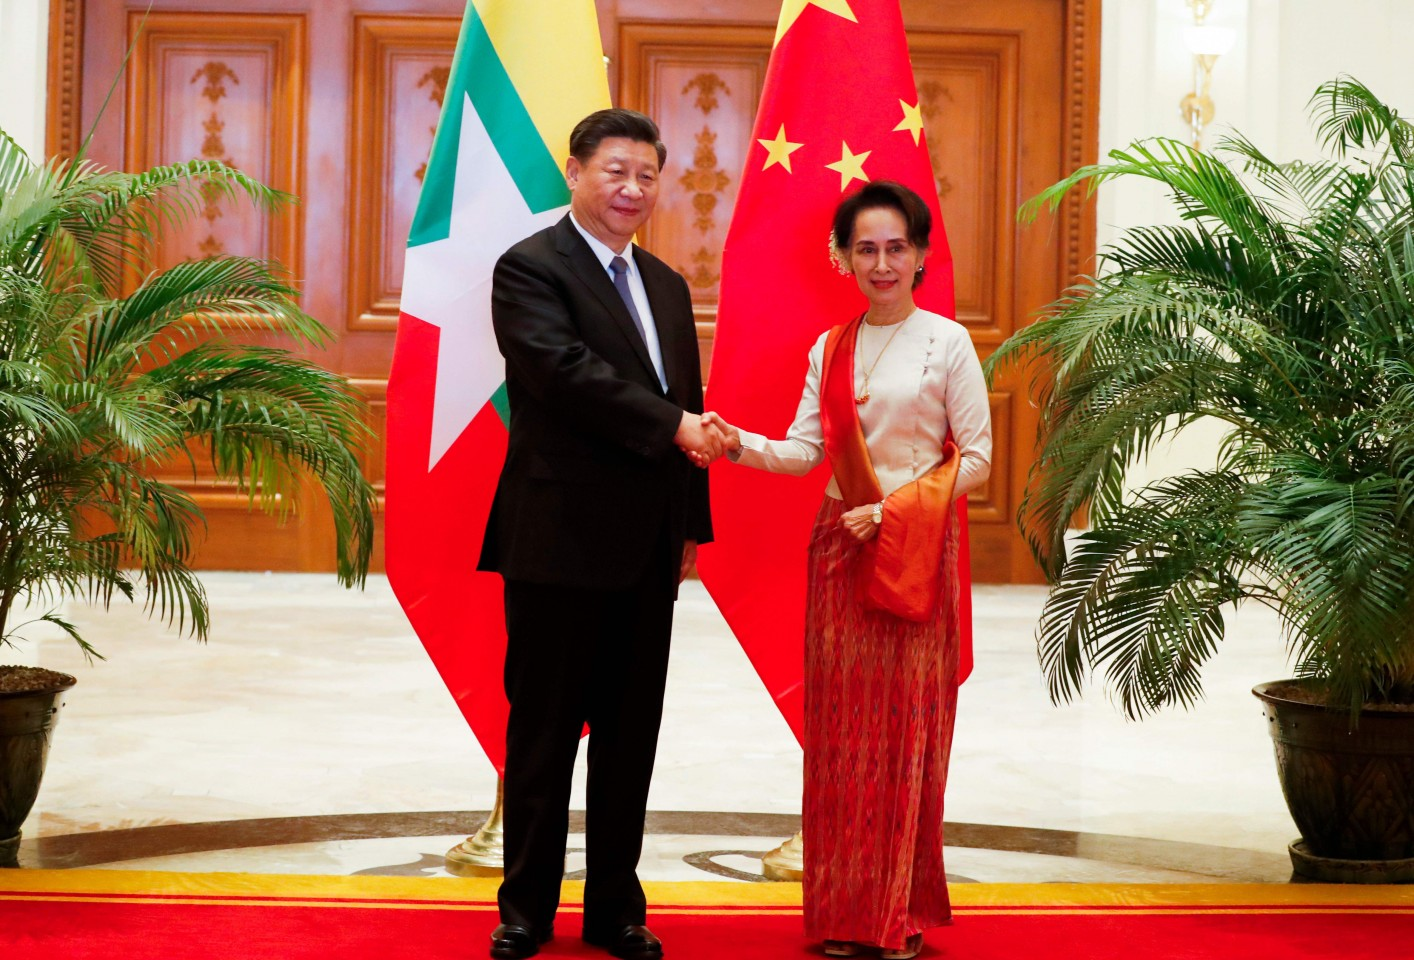 Chinese President Xi Jinping (left) and Myanmar State Counsellor Aung San Suu Kyi shake hands before a bilateral meeting at the Presidential Palace in Naypyidaw on 18 January 2020. (Nyein Chan Naing/POOL/AFP)